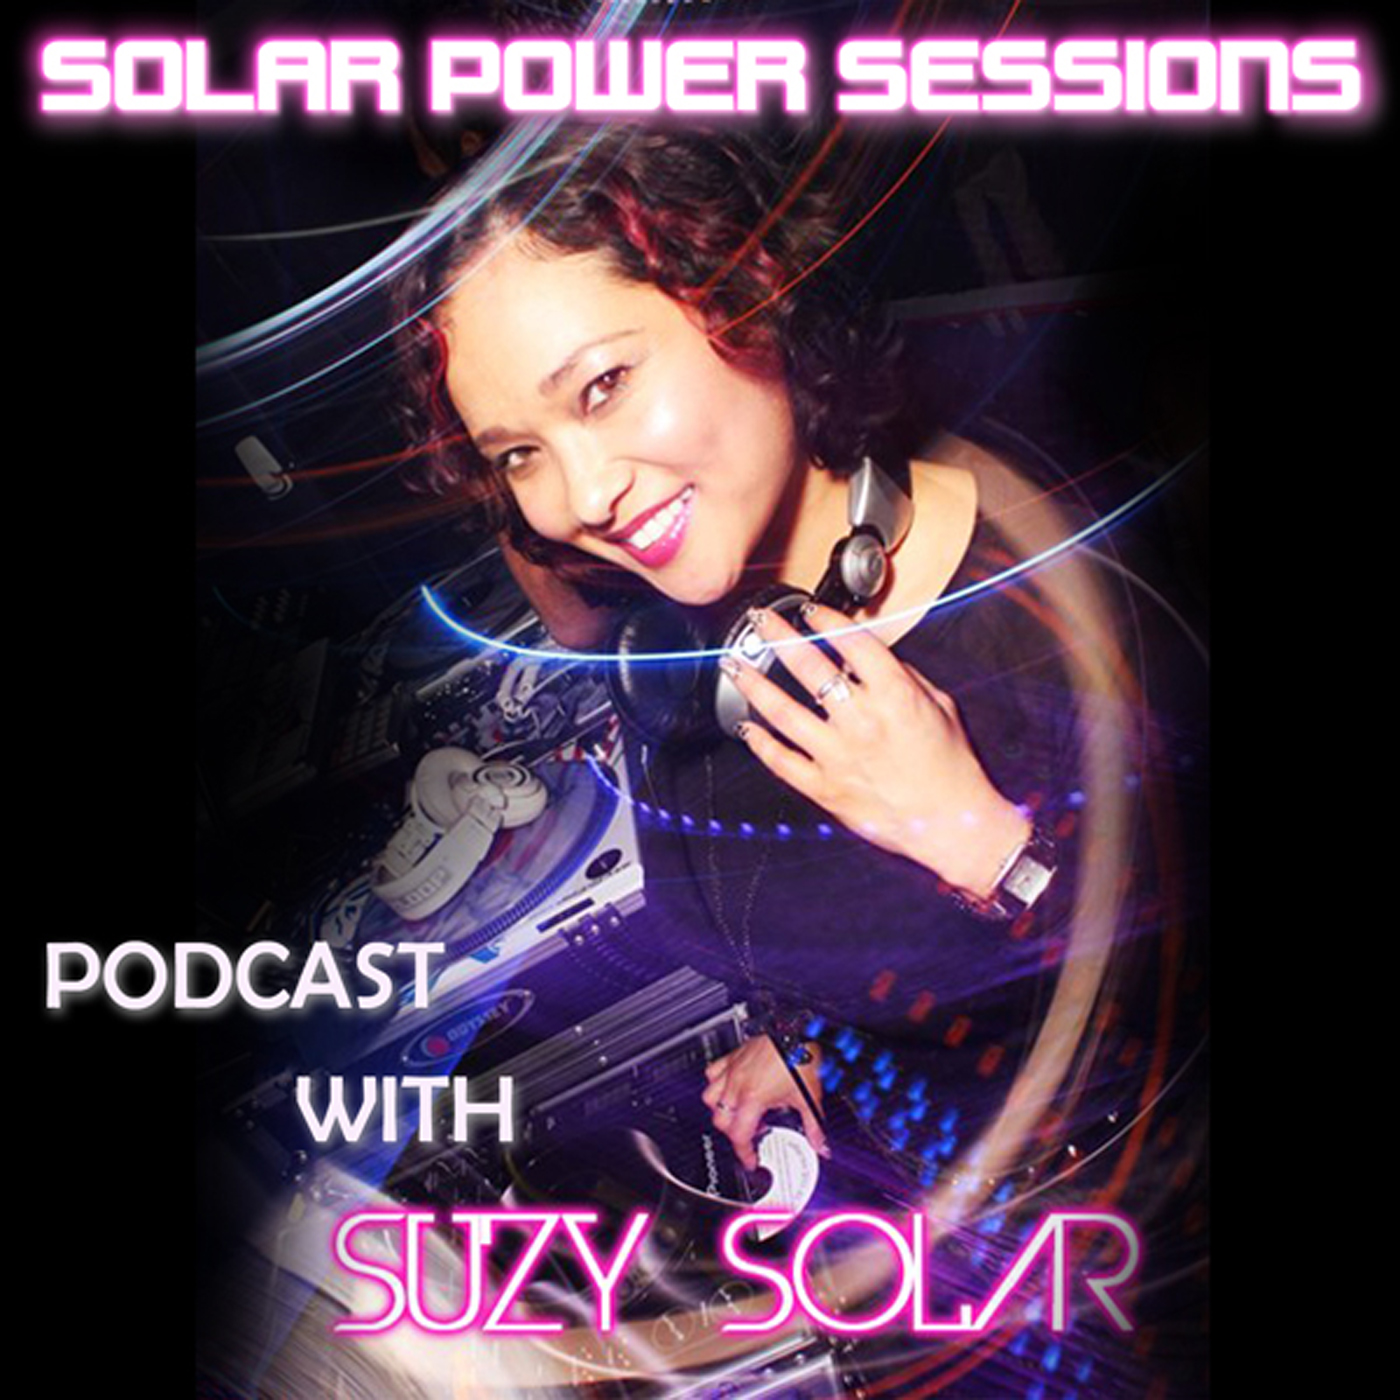 Solar Power Sessions – Suzy Solar